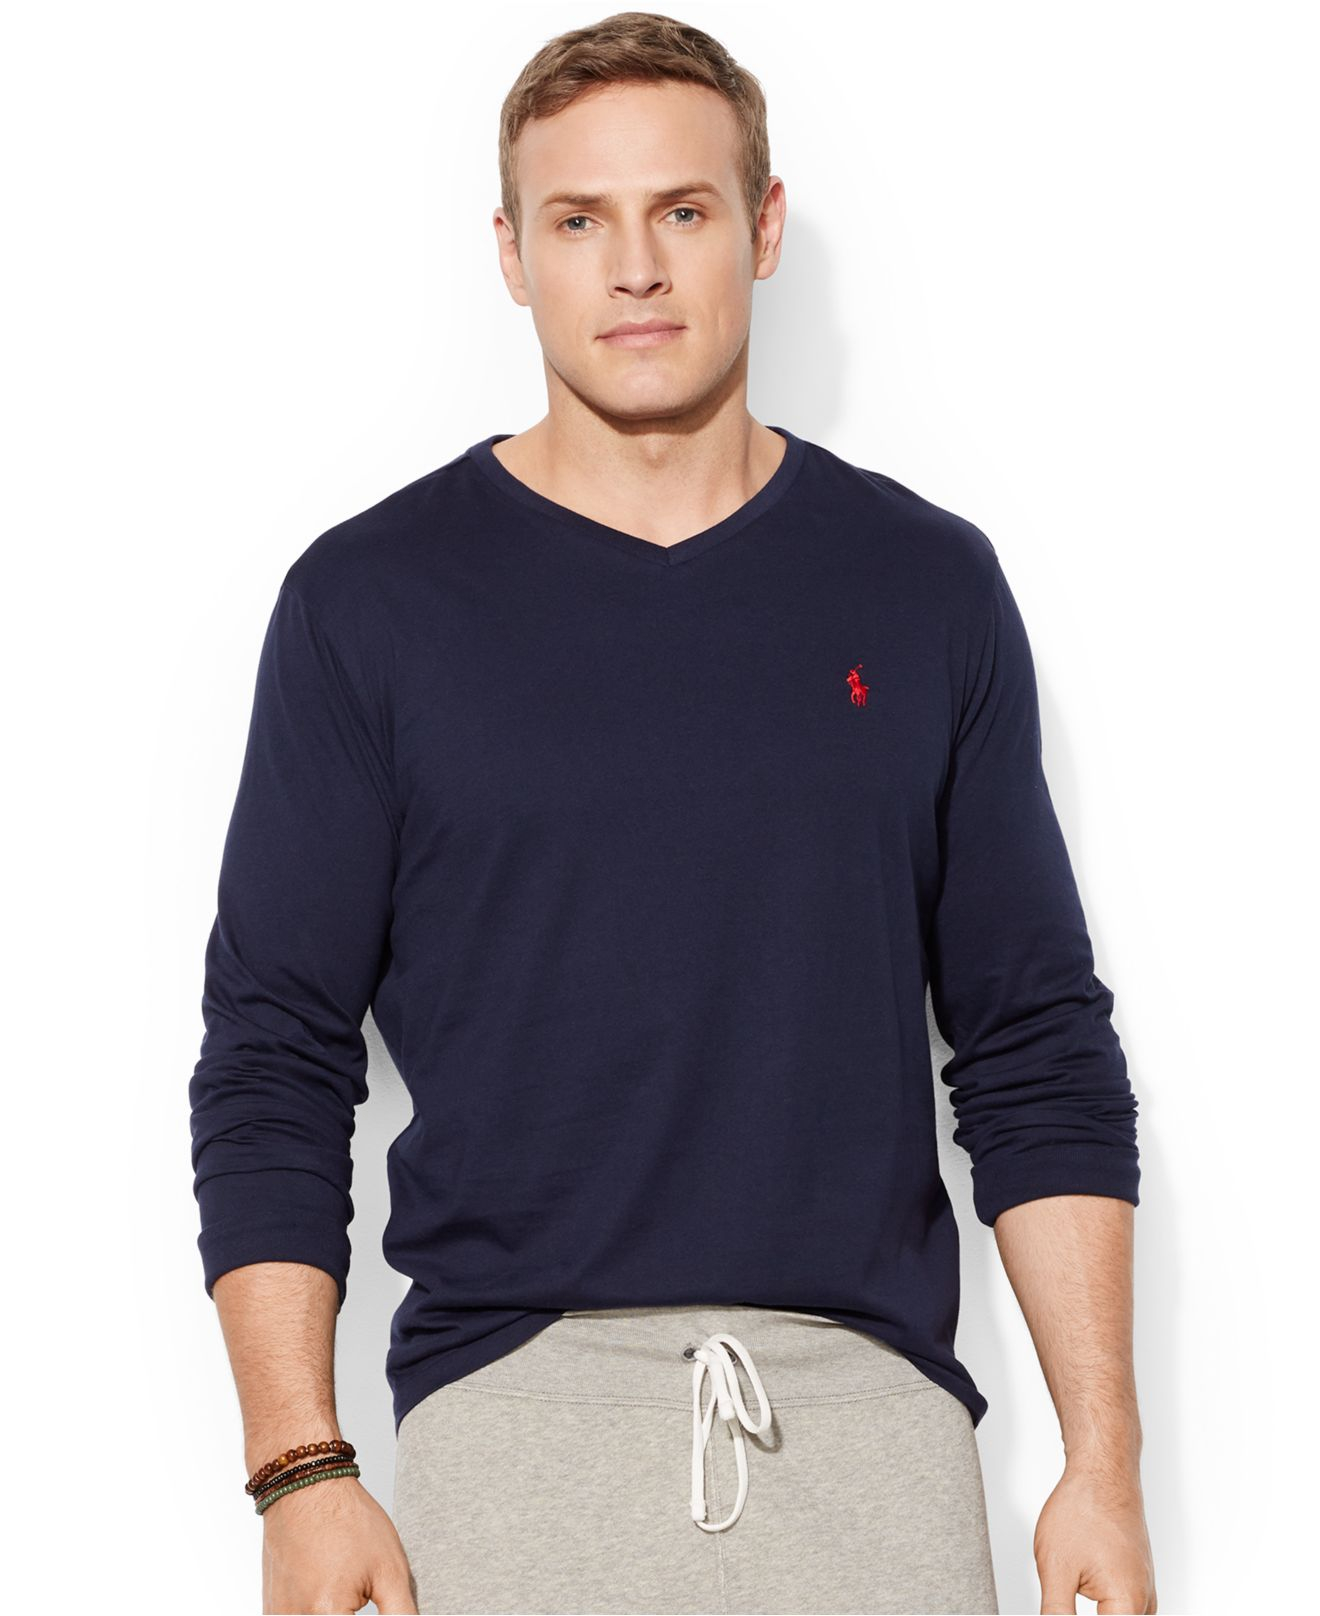 Polo ralph lauren big and tall long sleeve v neck t shirt for Men s tall long sleeve shirts